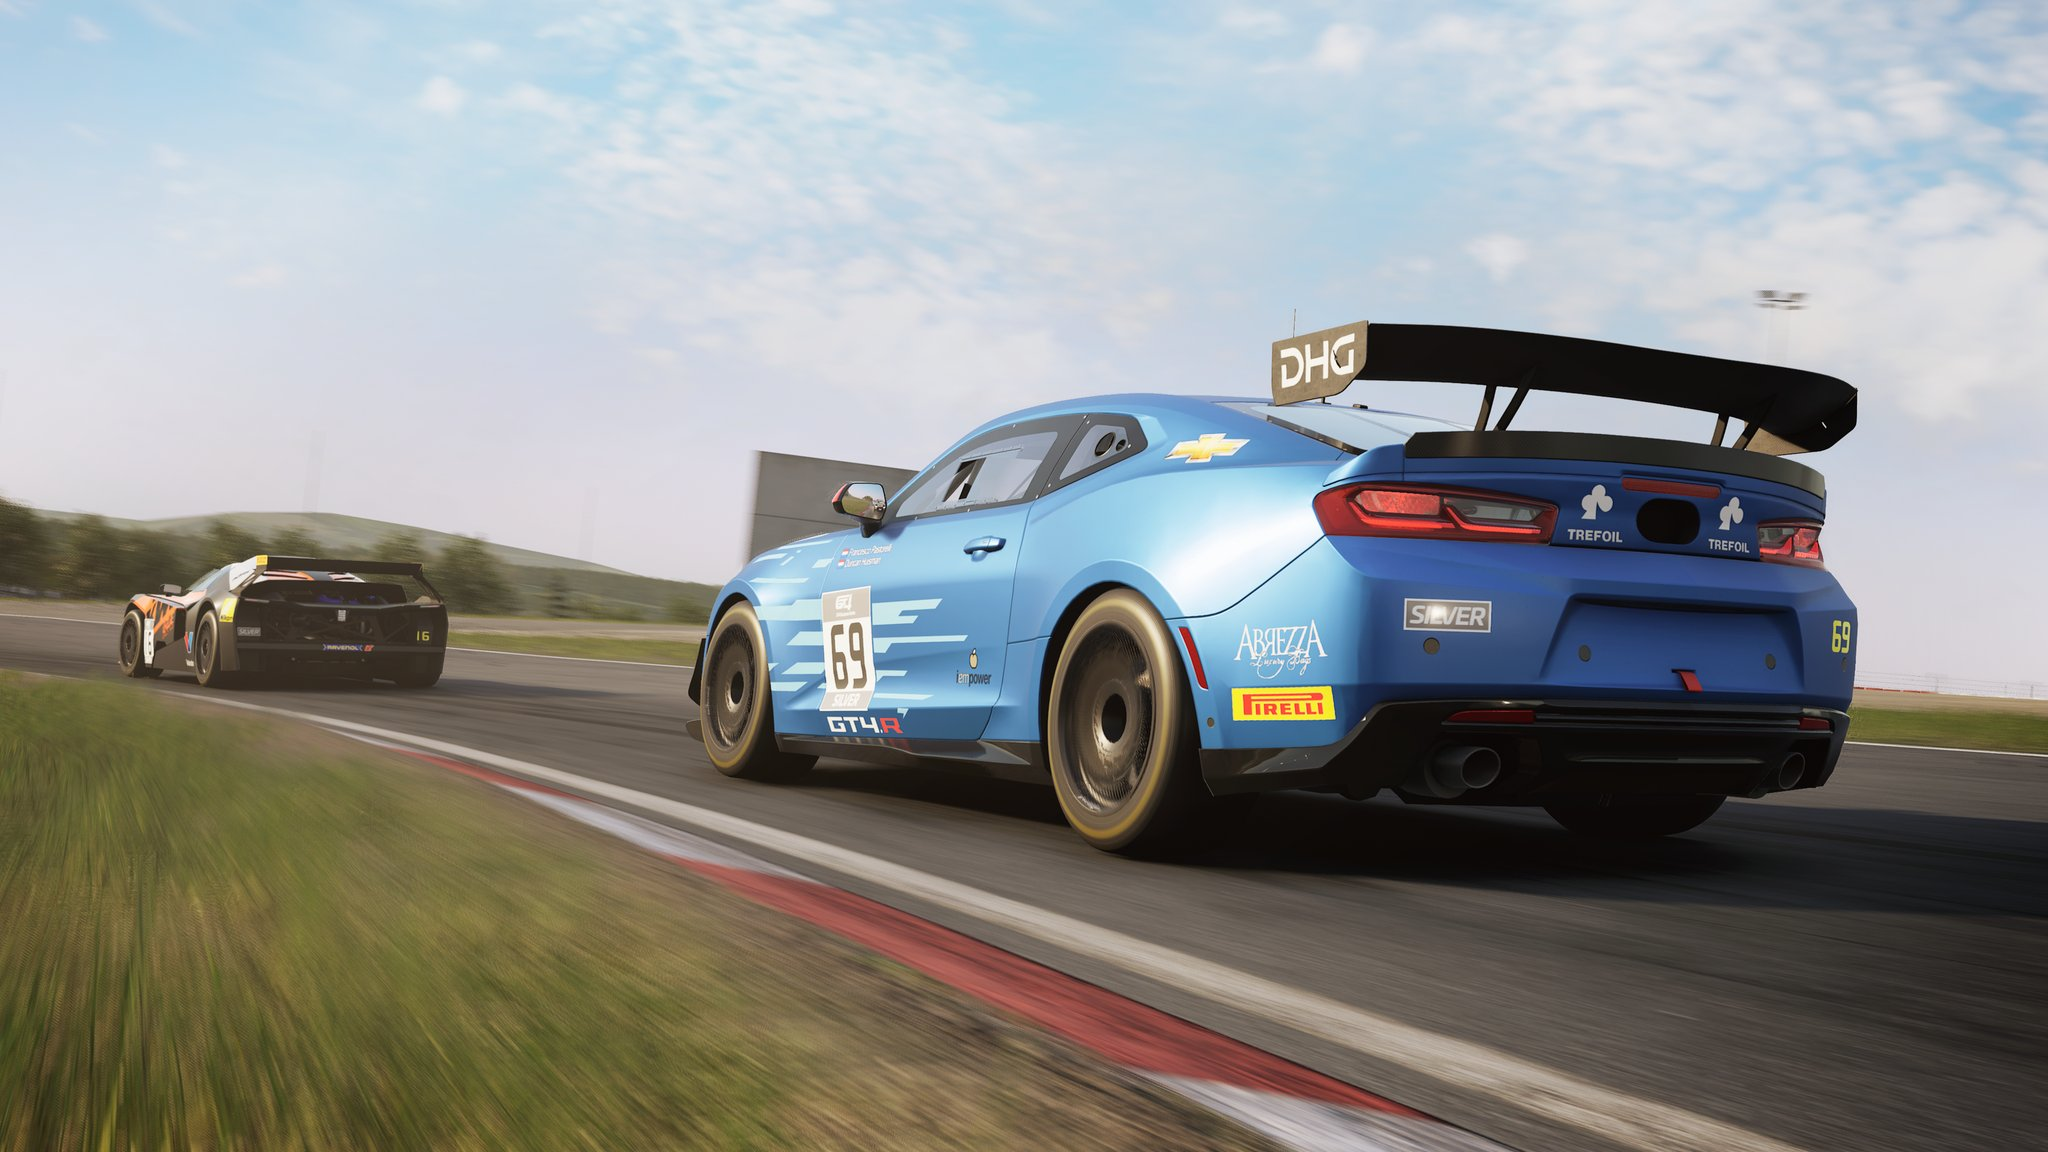 EcU4UHZWoAAs_Fh Assetto Corsa Competizione GT4 Pack – Lots of Previews